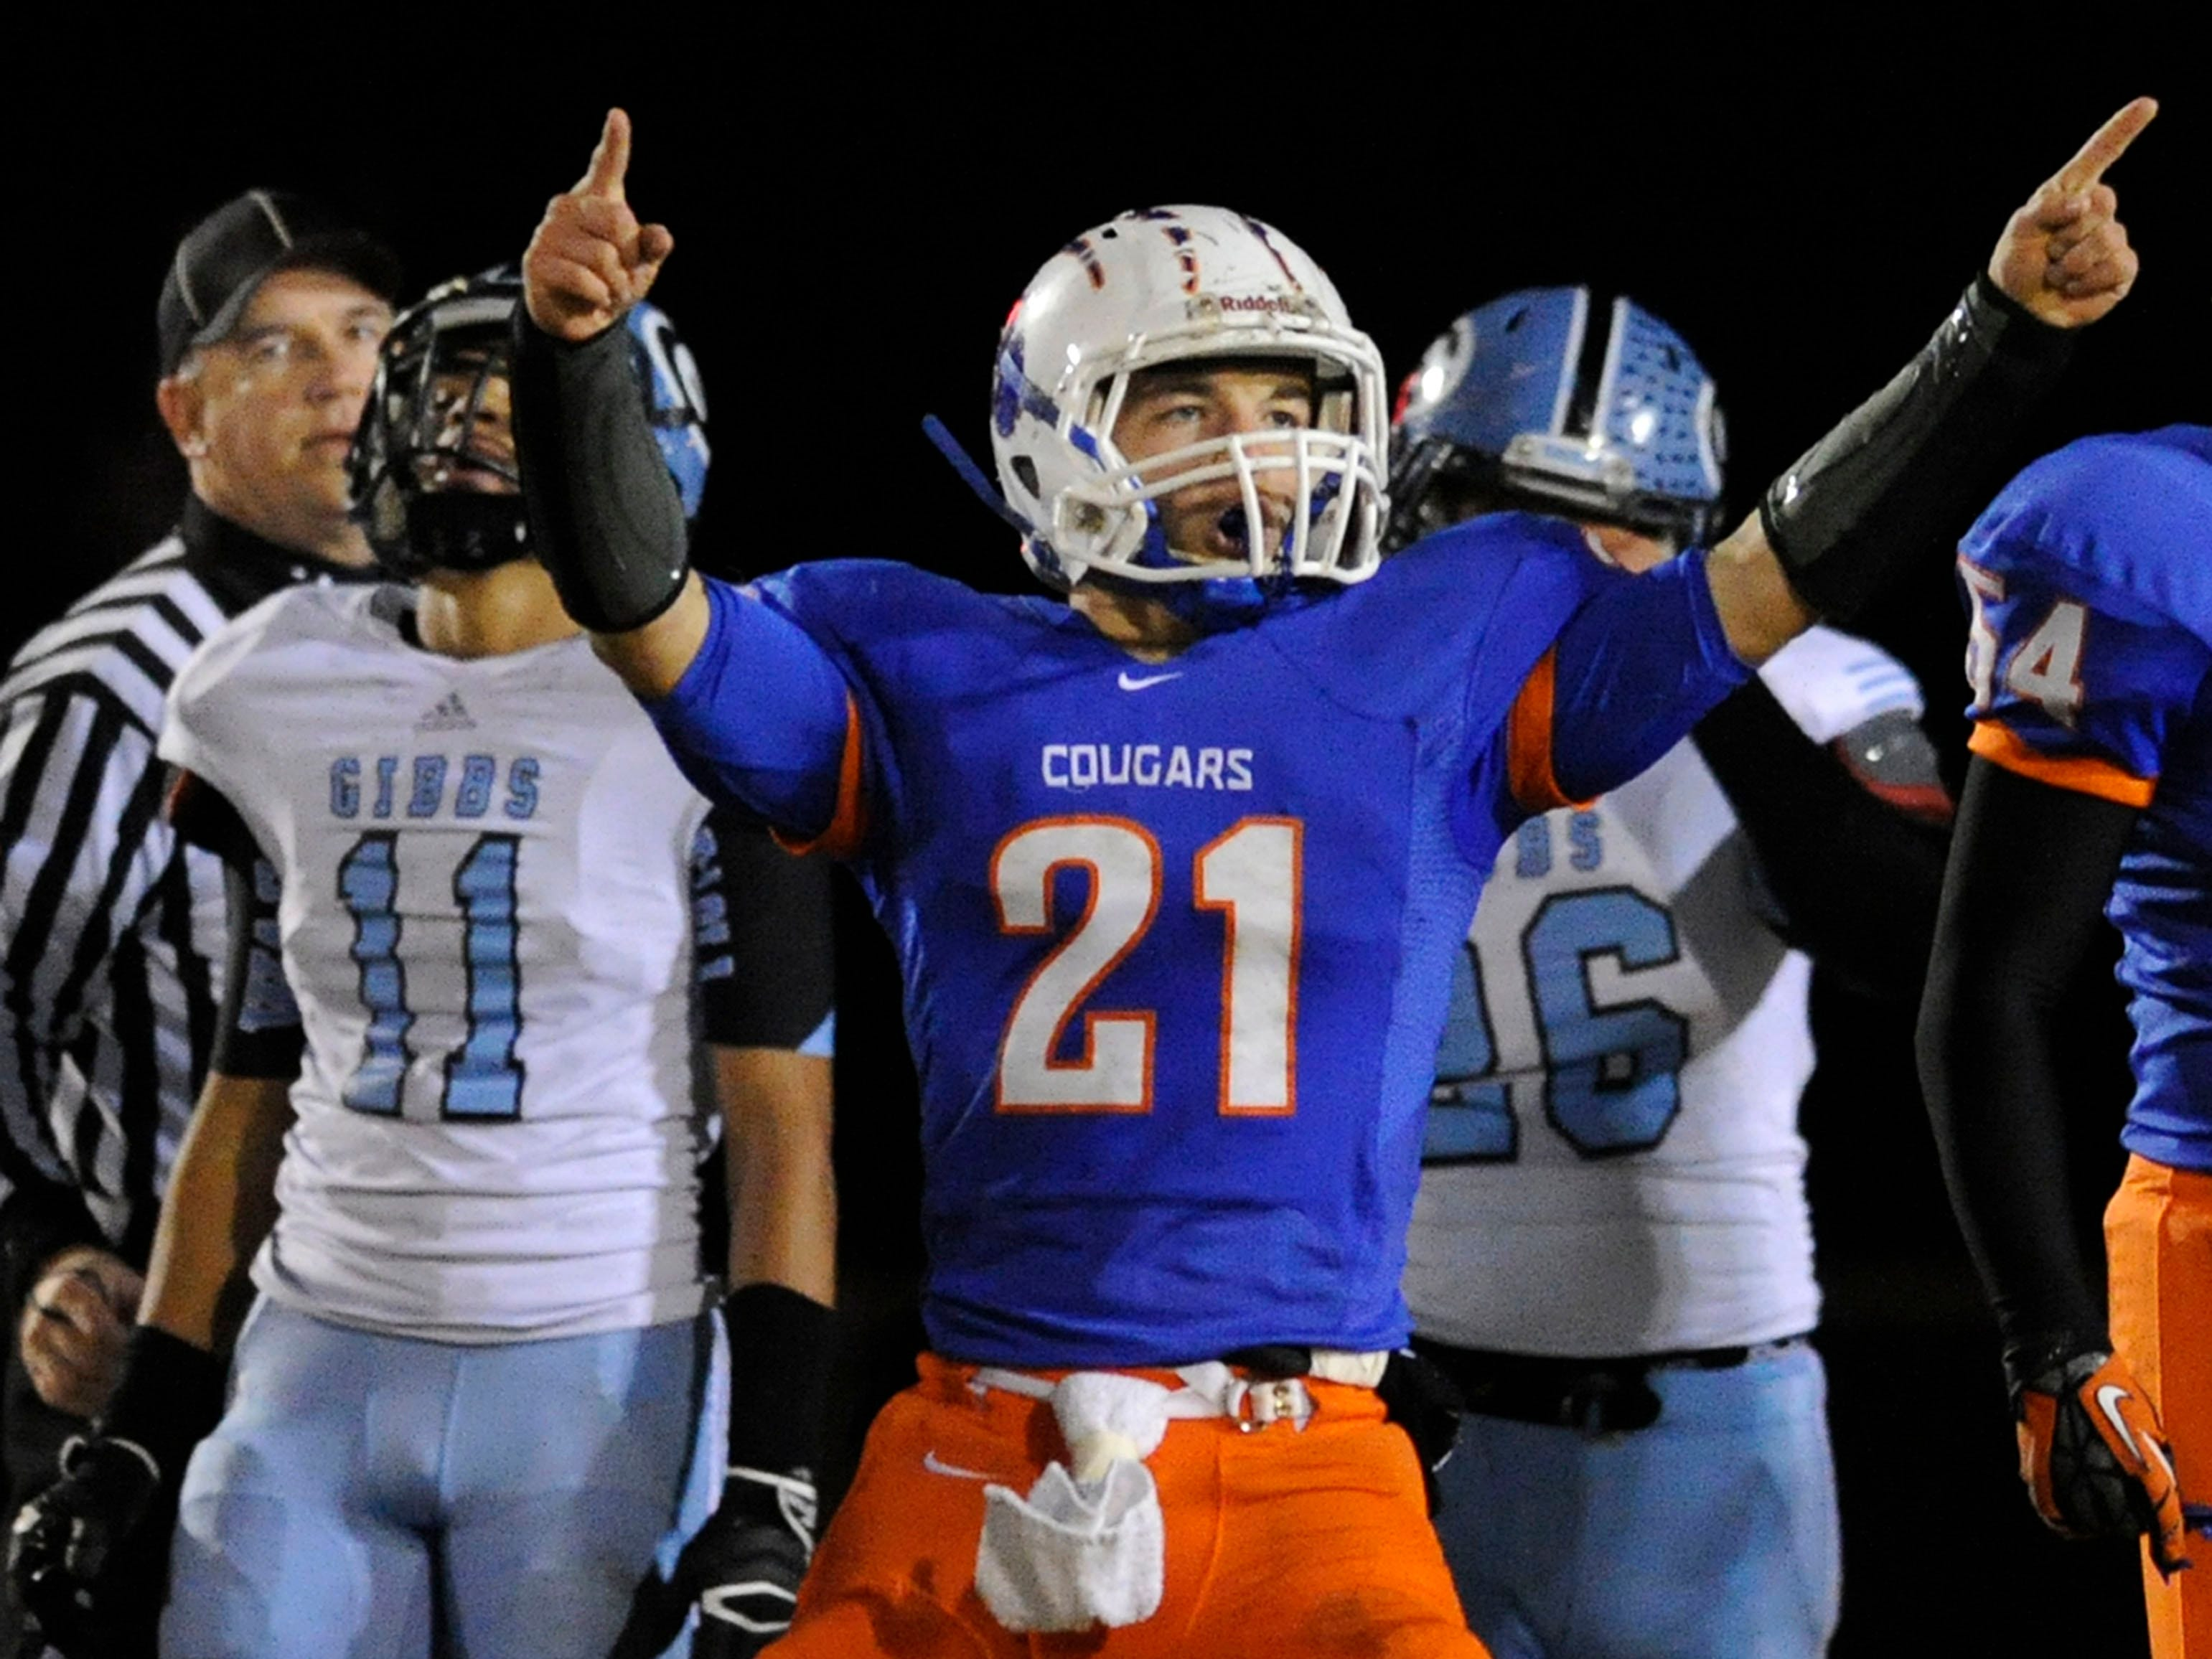 Campbell County's Paul Courdle (21) celebrates a touchdown against Gibbs in the second half at Campbell County High School in Jacksboro on Friday, Nov. 8, 2013.